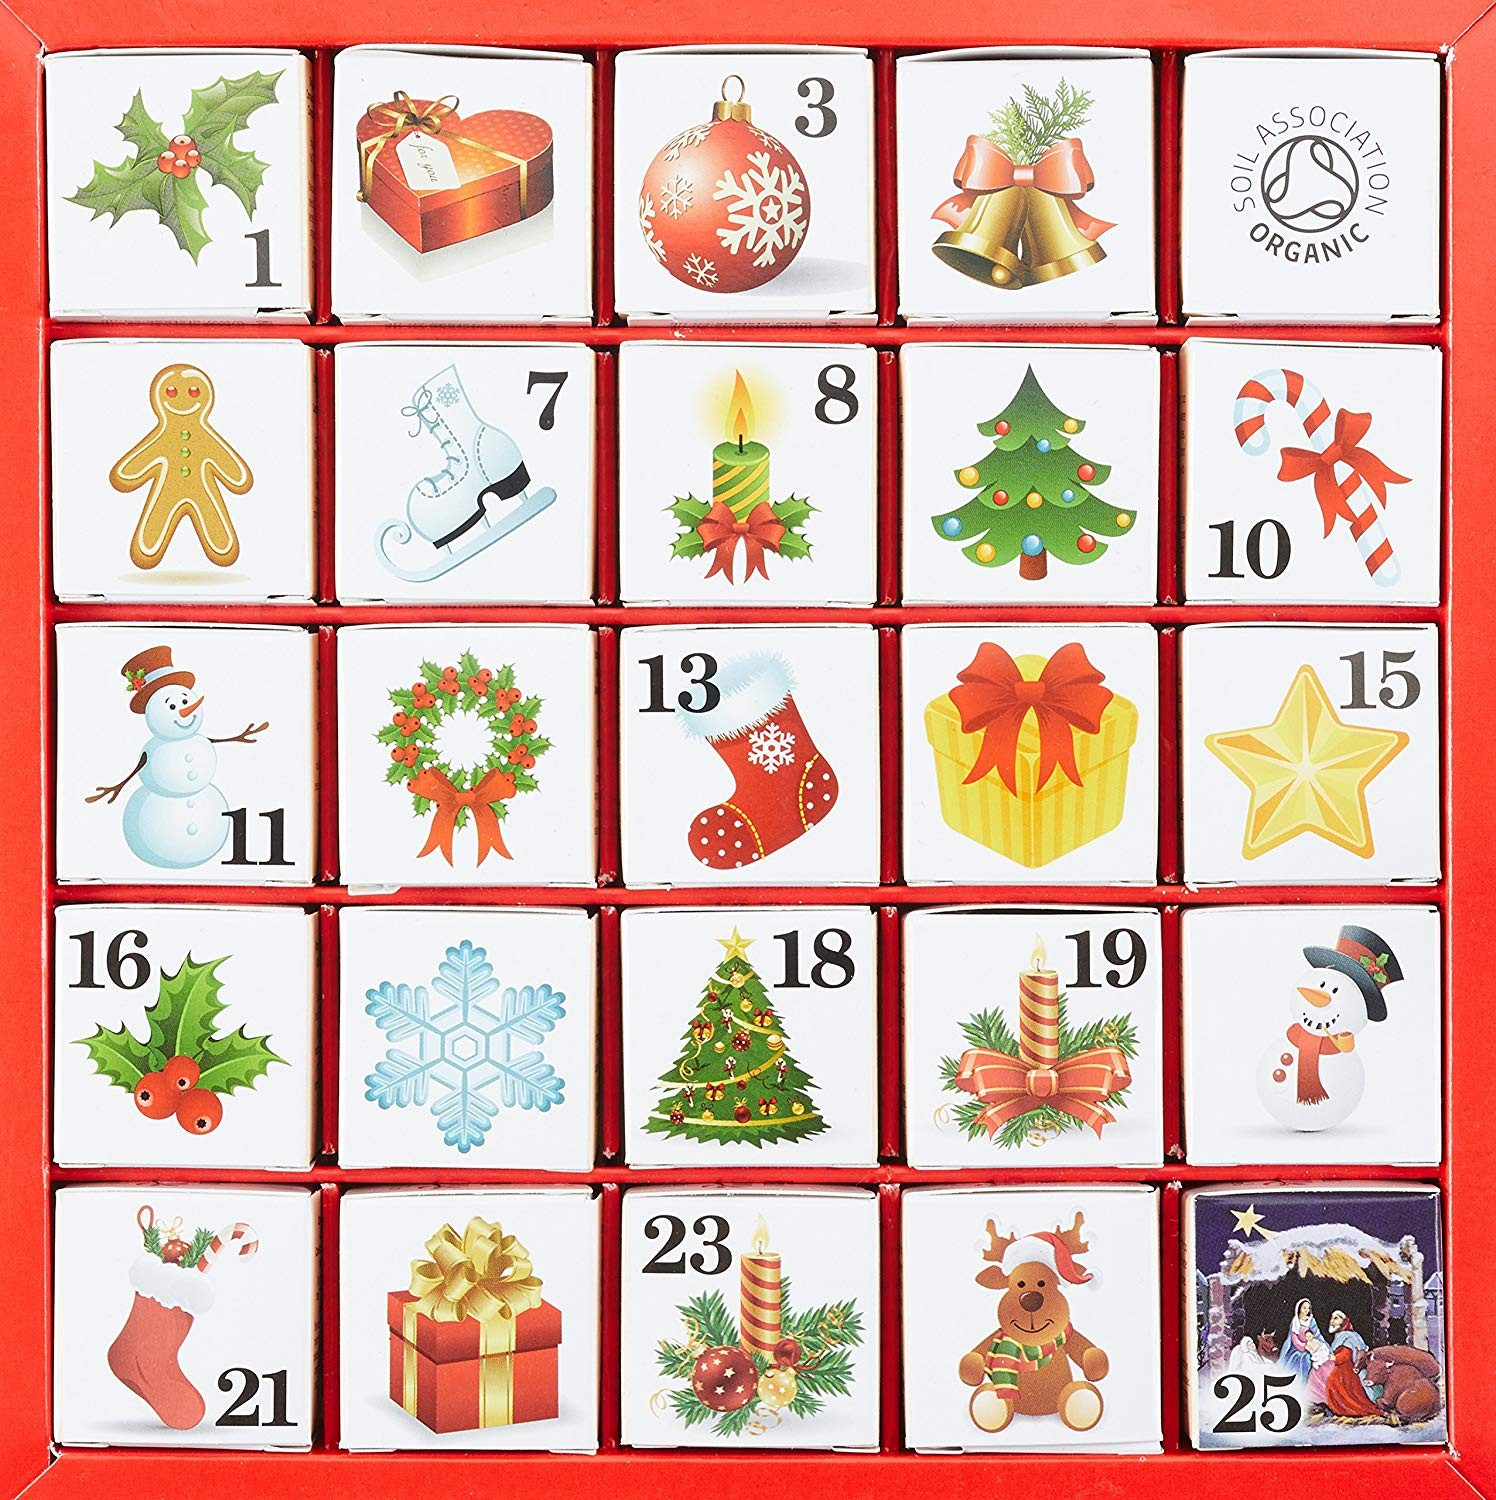 2019 March Calendar Sri Lanka Más Reciente English Tea Shop Advent Calendar Christmas ornaments 50g Of 2019 March Calendar Sri Lanka Más Reciente Julian Calendar 2019 Quadax July 2018 Calendar Sri Lanka – Calendar